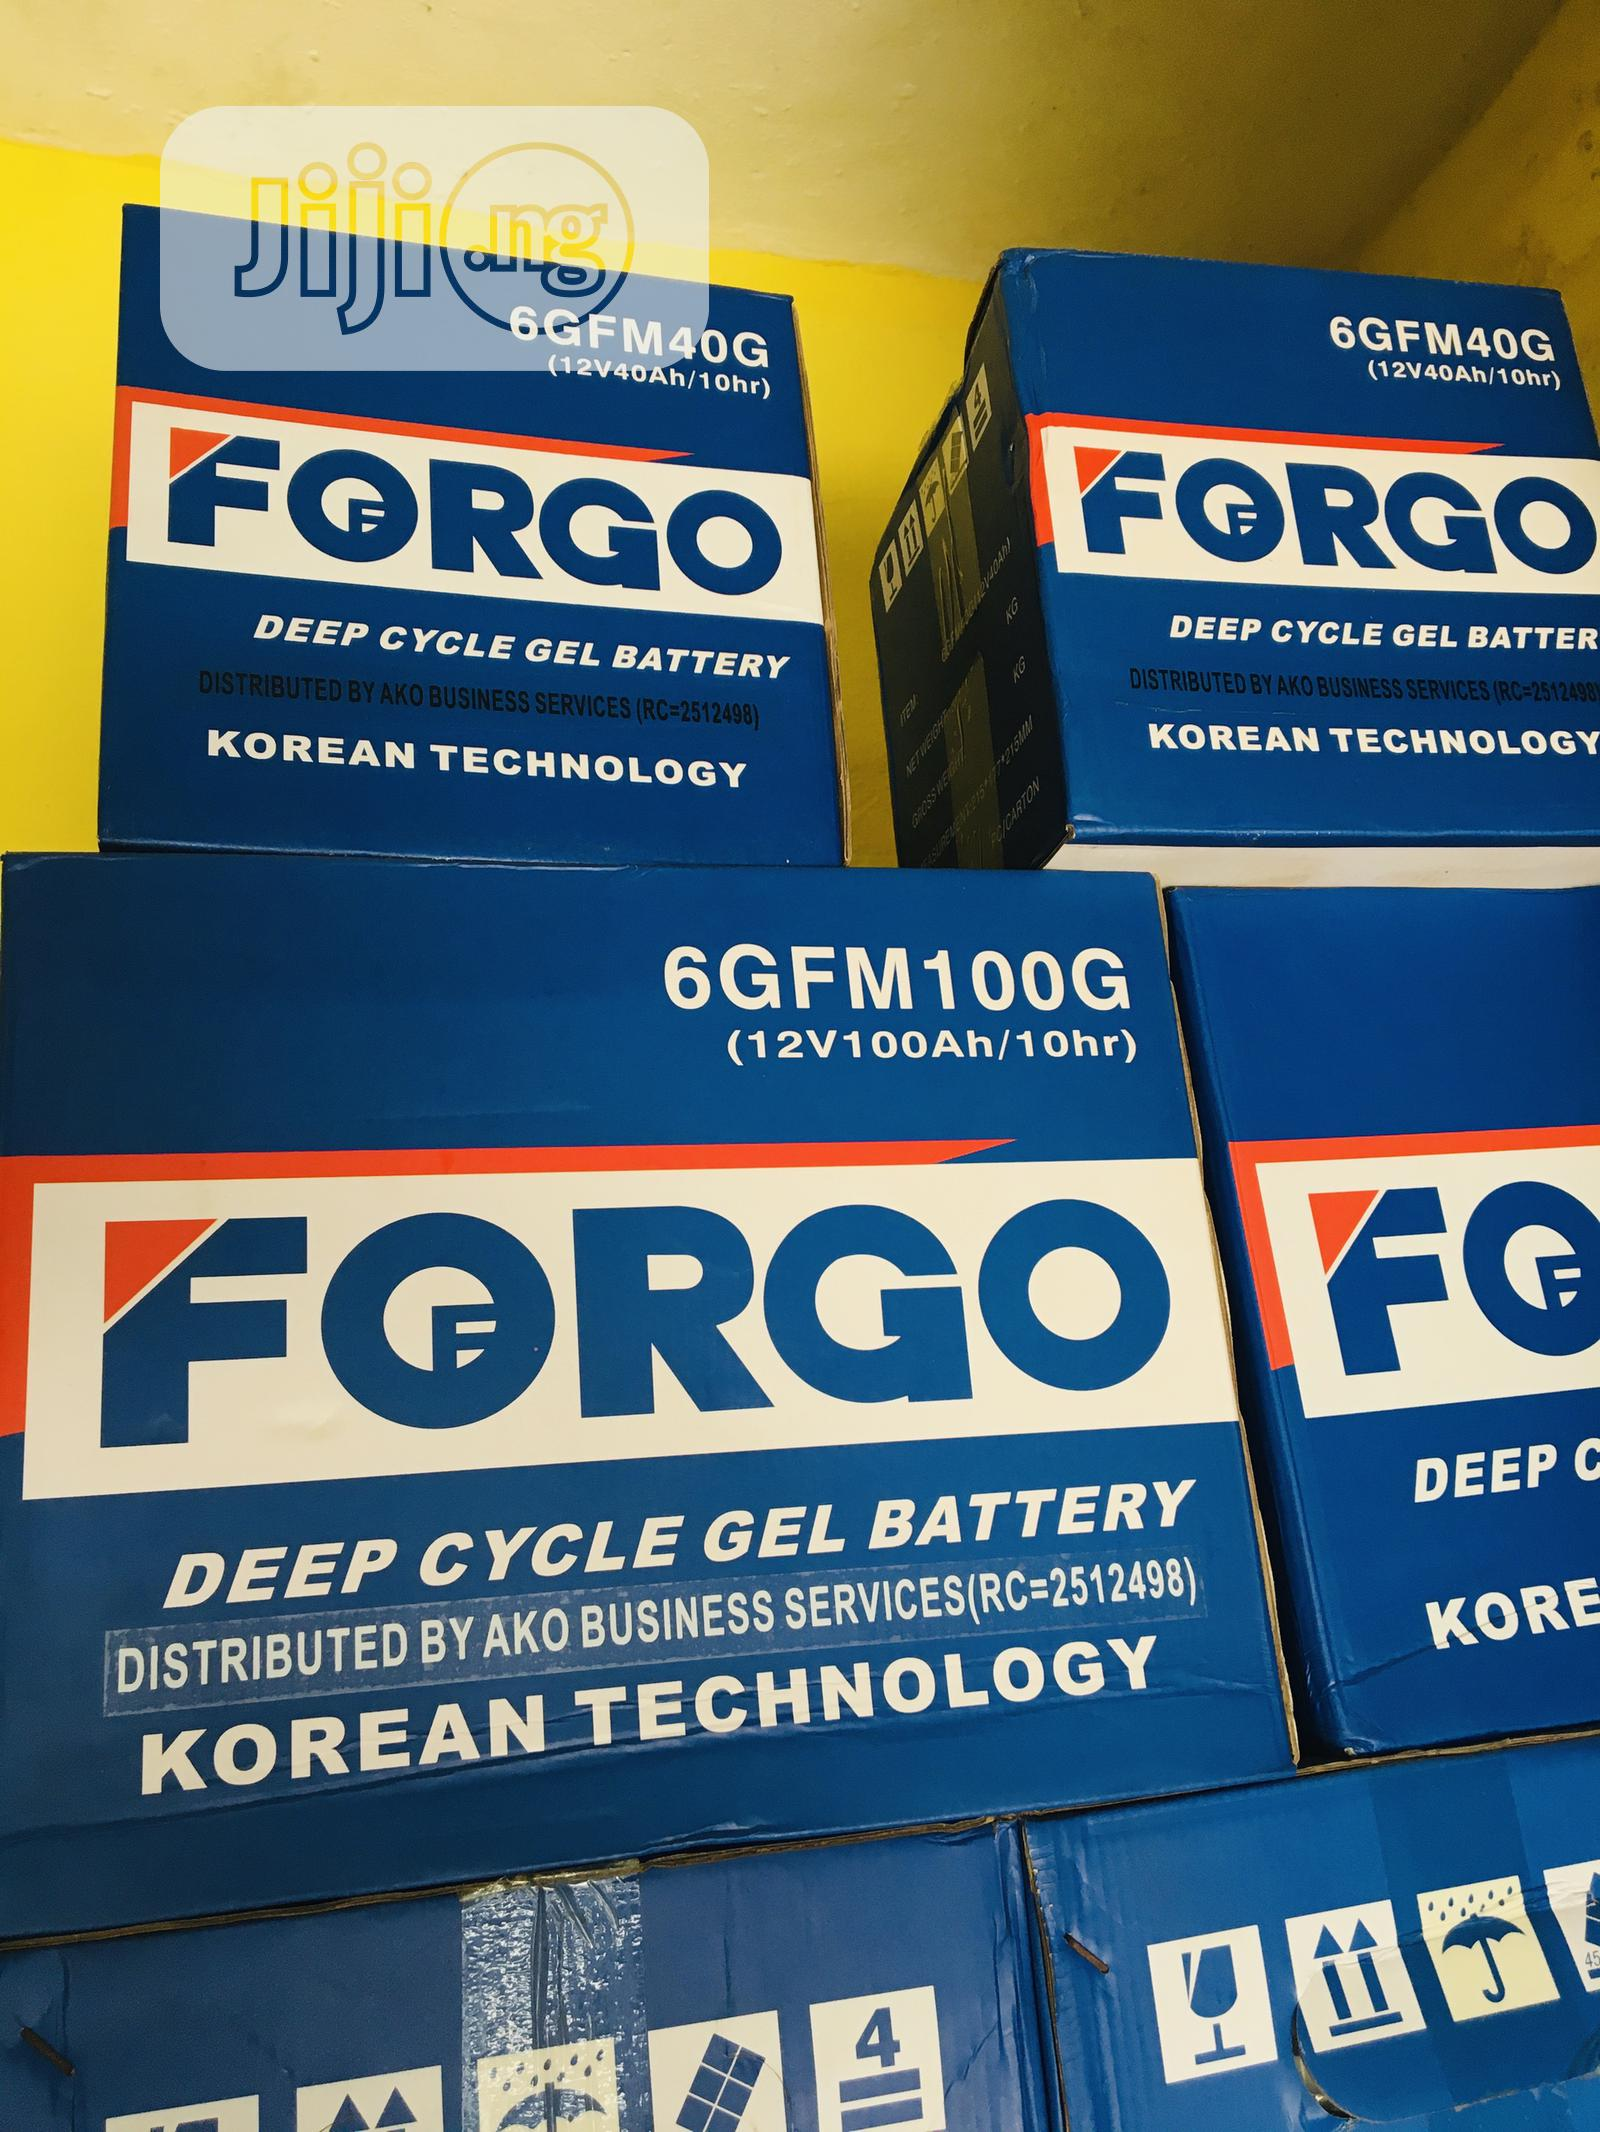 100ah Forgo Battery Available With 1yr Warranty